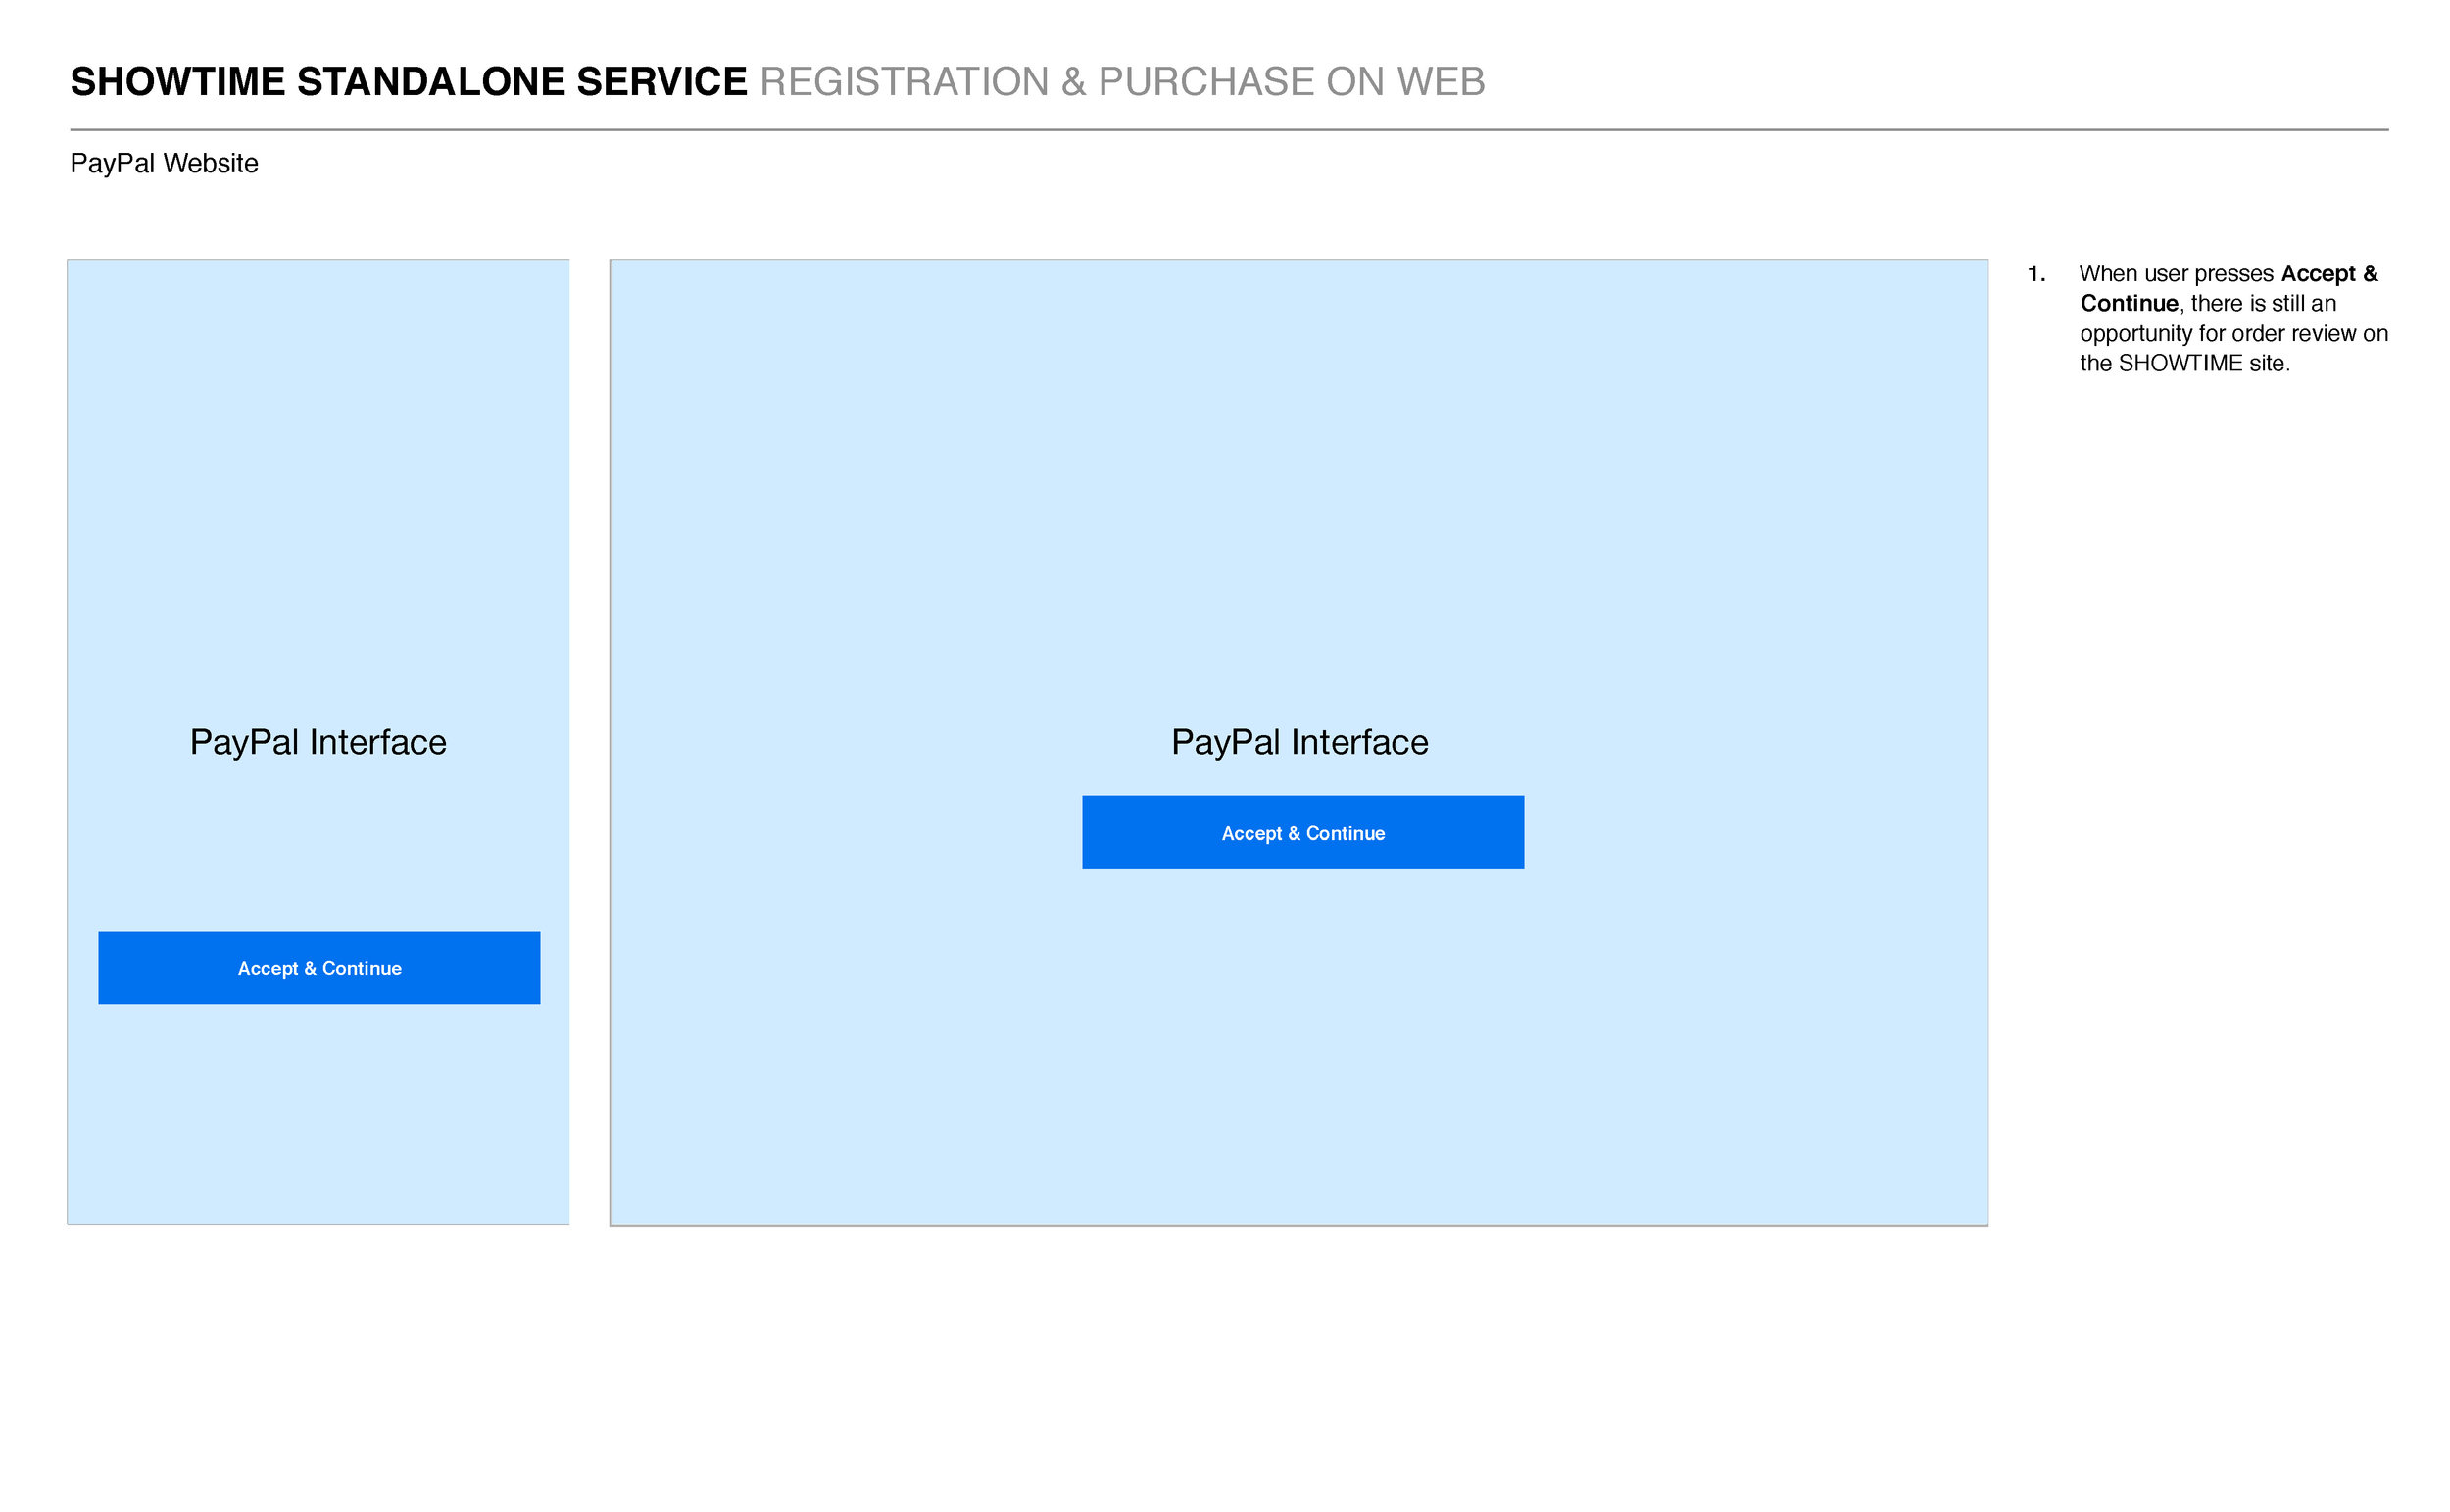 Showtime_Purchase_Web_v9_Page_13.jpg